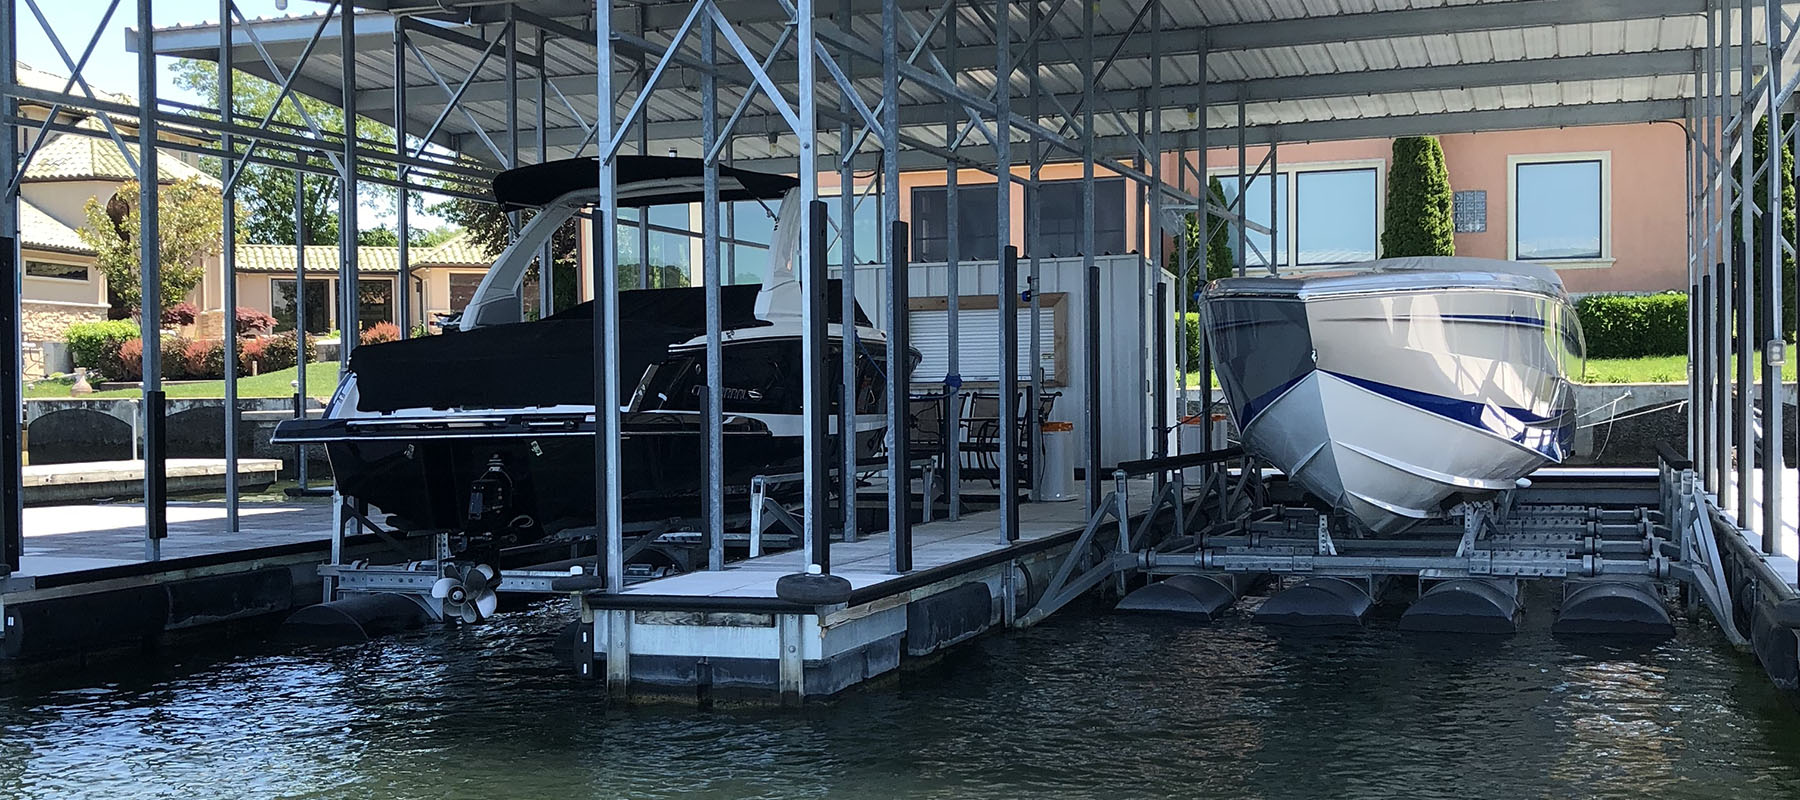 20,000 lb boat lift at the Lake of the Ozarks